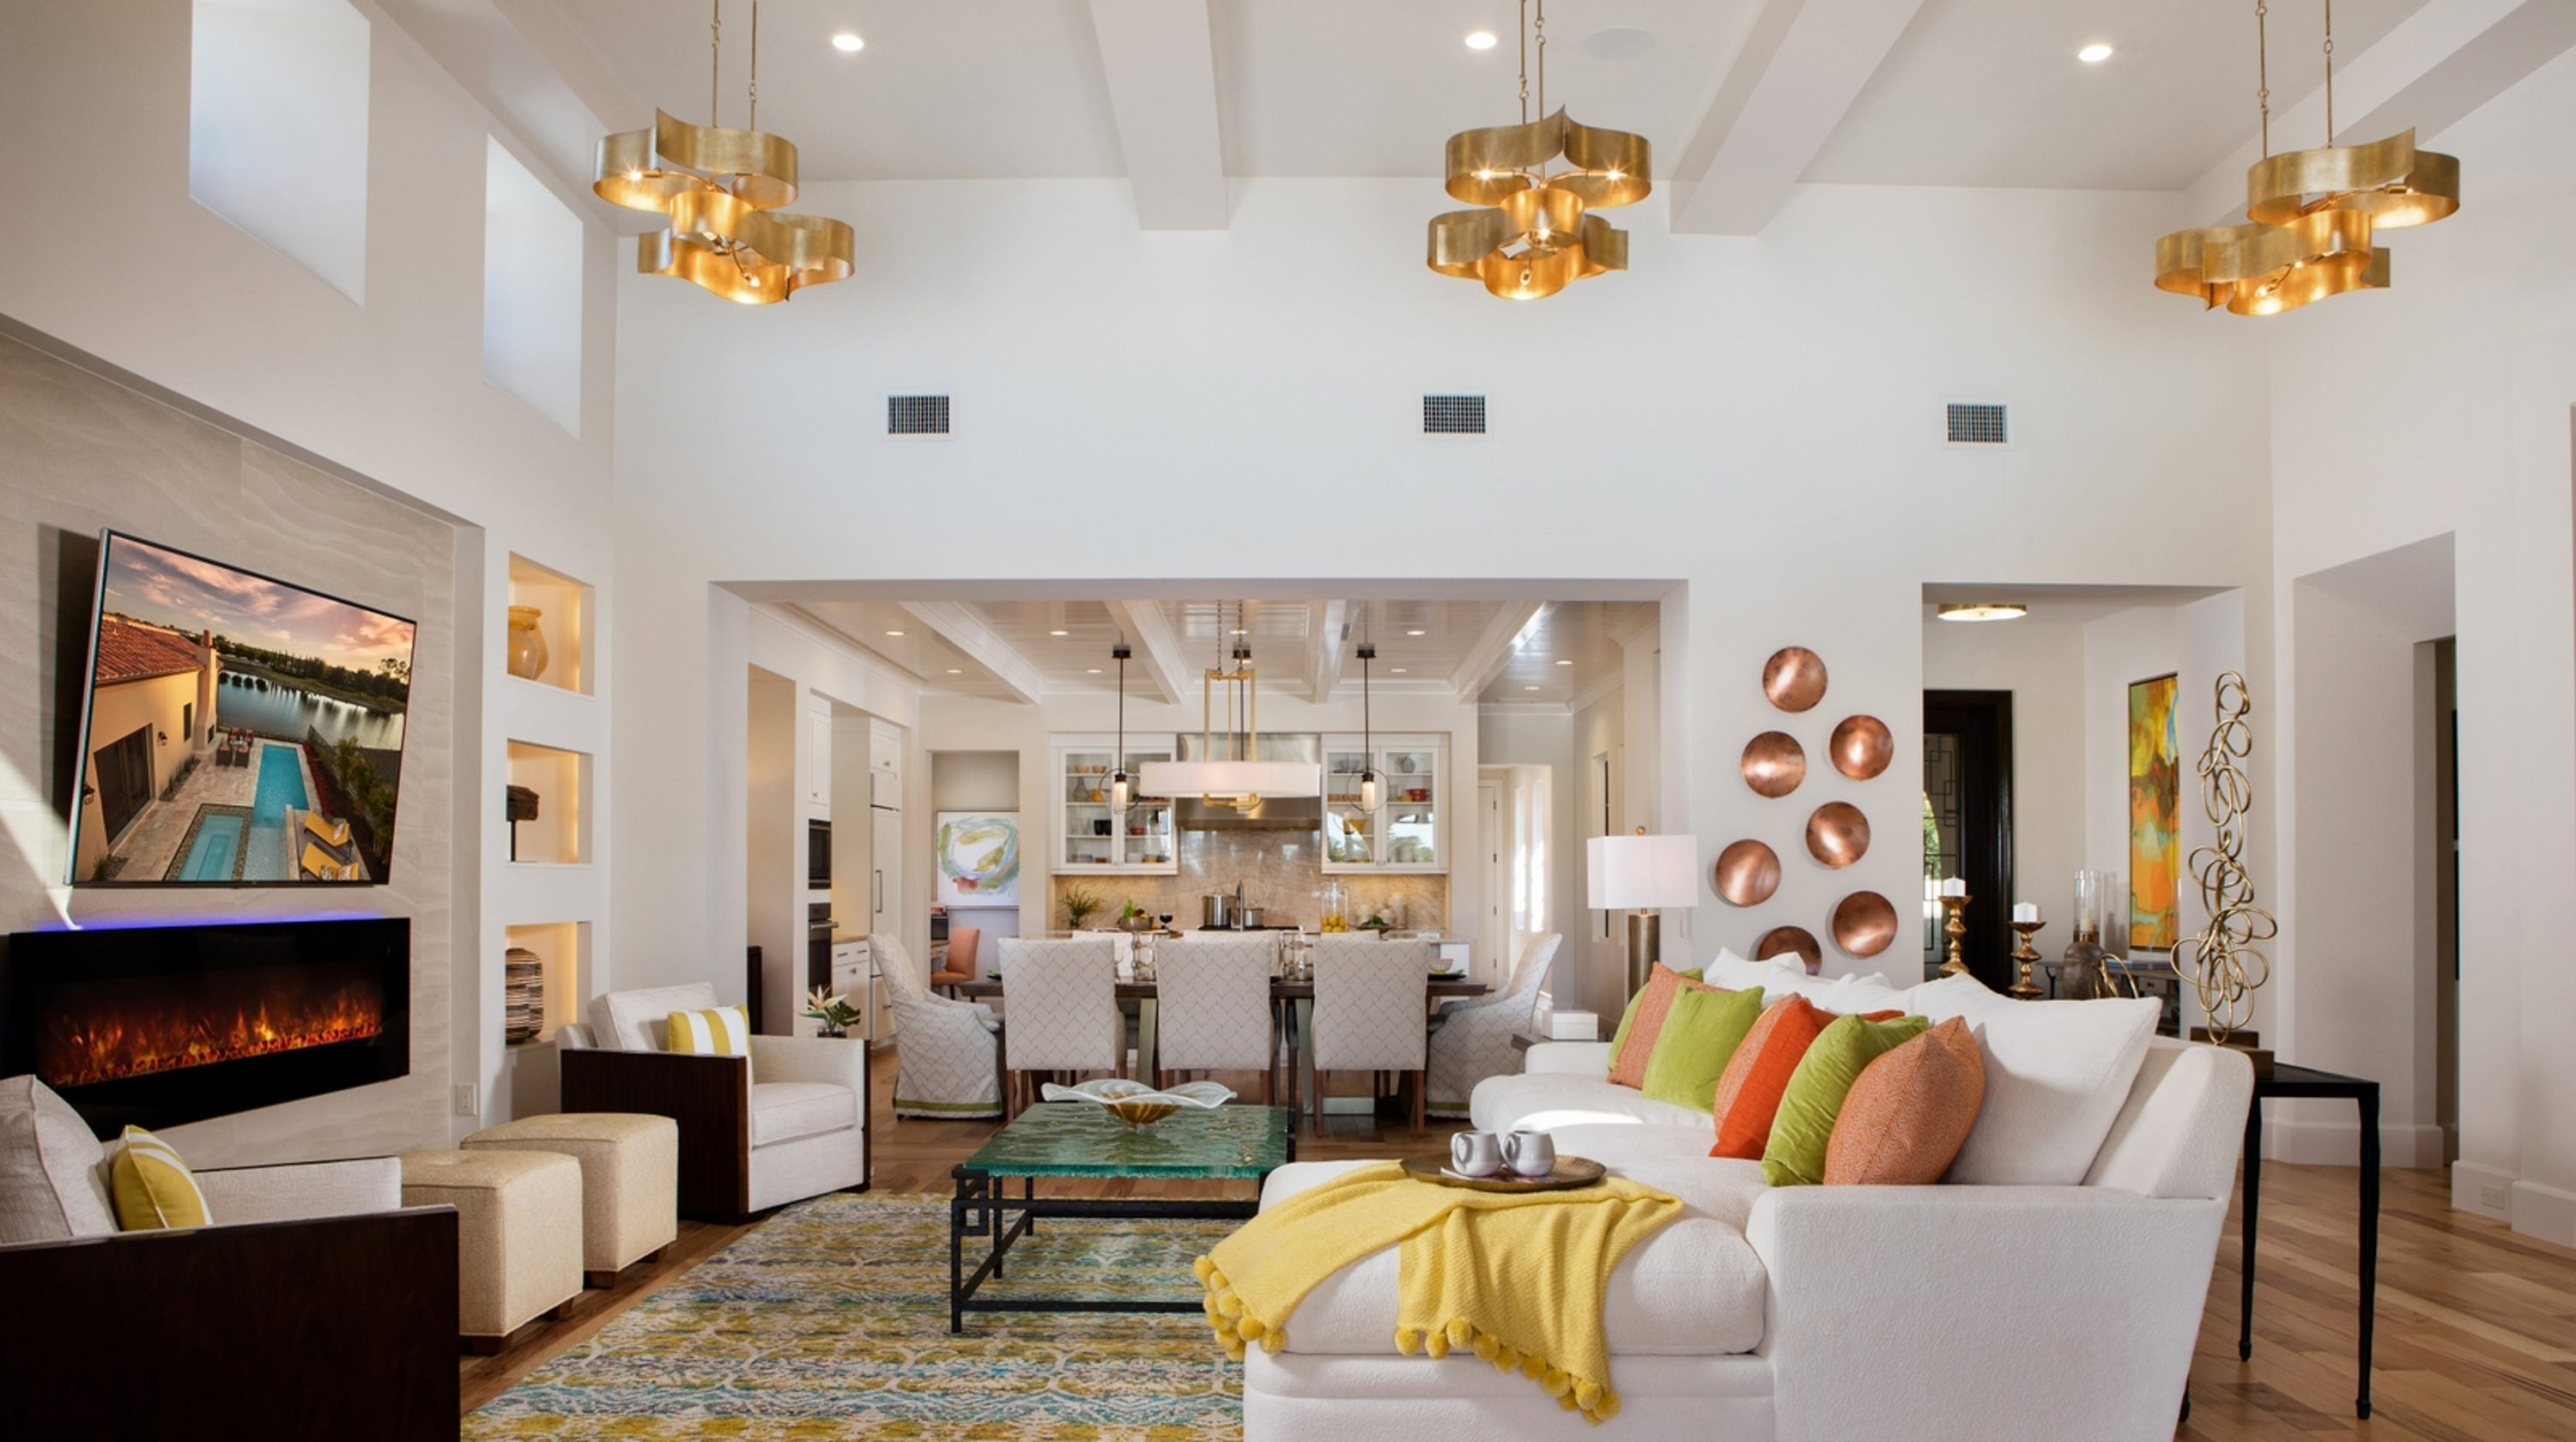 Mediterra\'s Fall 2018 Model Home Showcase continues today